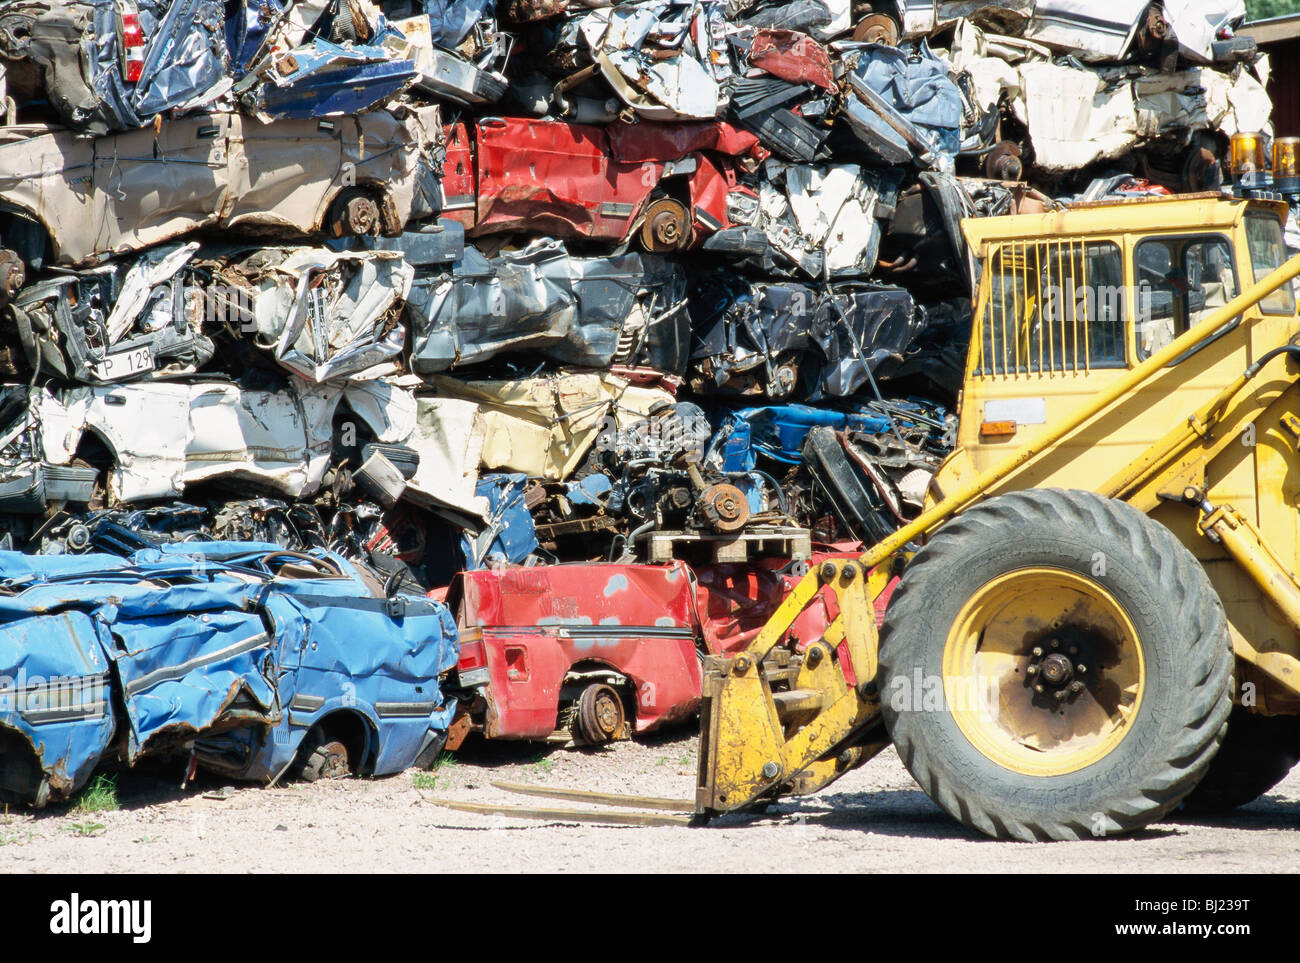 A wrecking yard, Sweden. - Stock Image